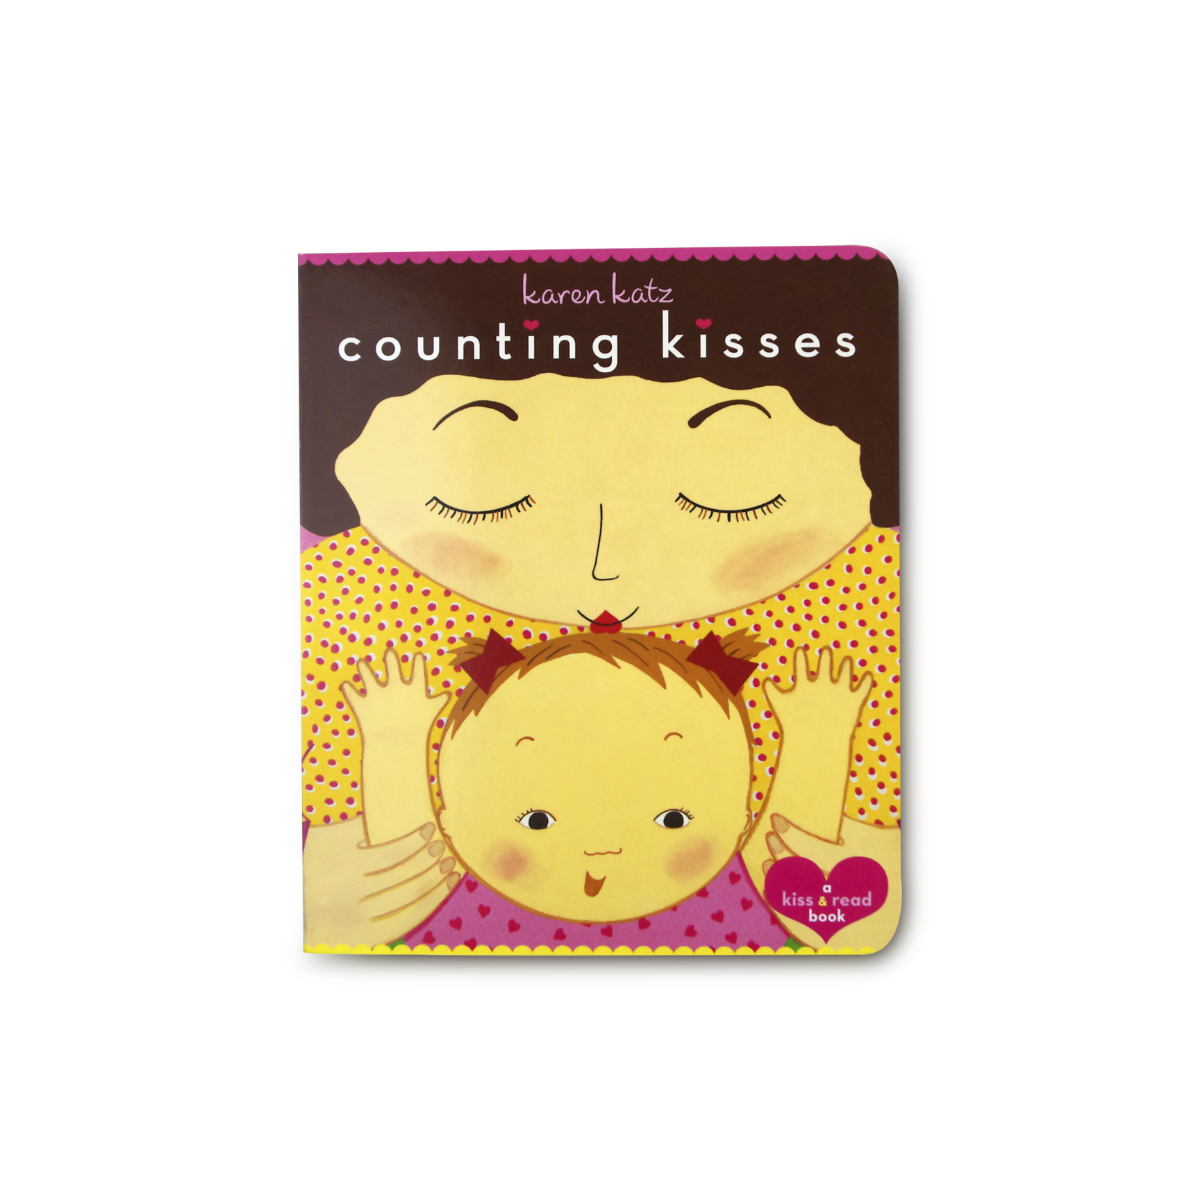 Counting Kisses (Classic Board Books) -9780689856587 - Me books Asia Store